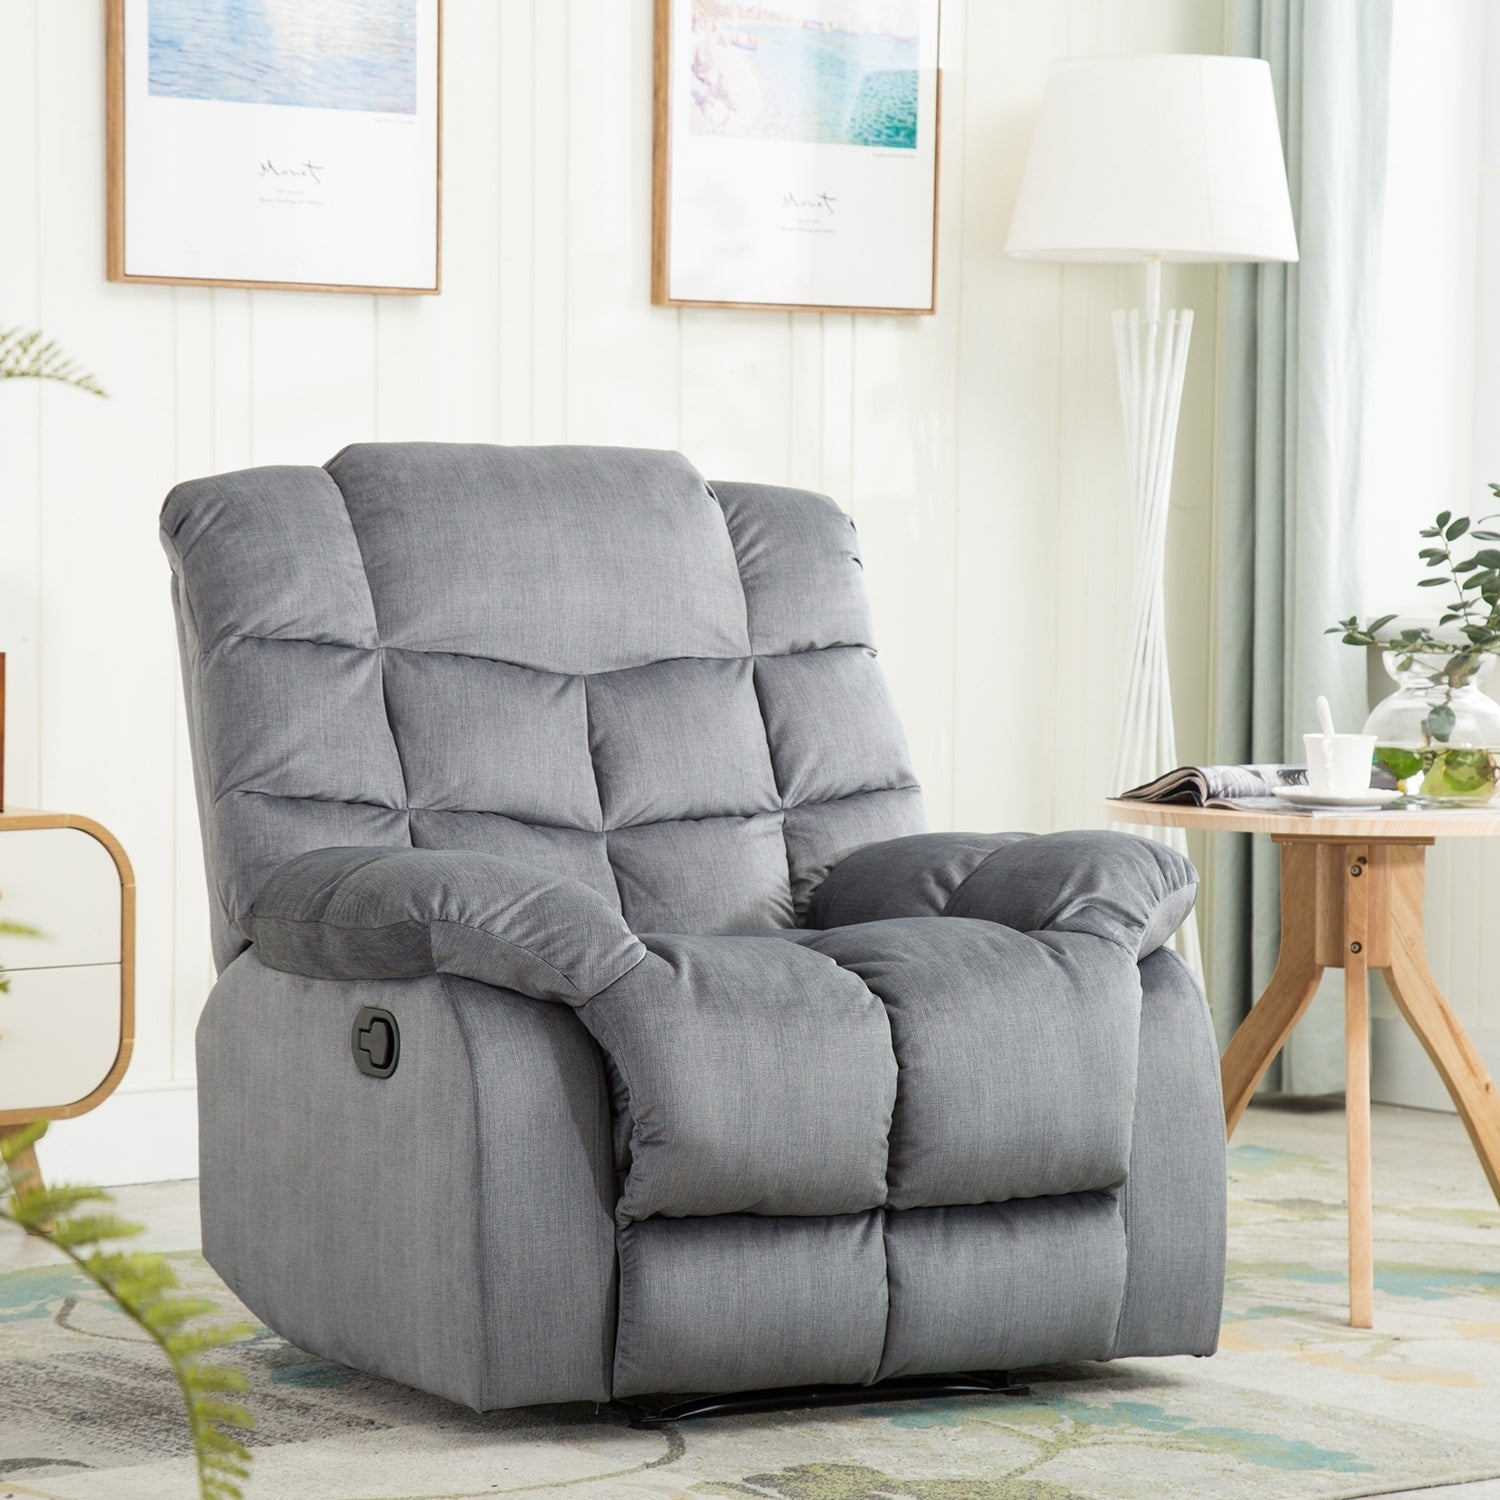 Recliner chair with over stuff backrest wide seat recliners slate gray